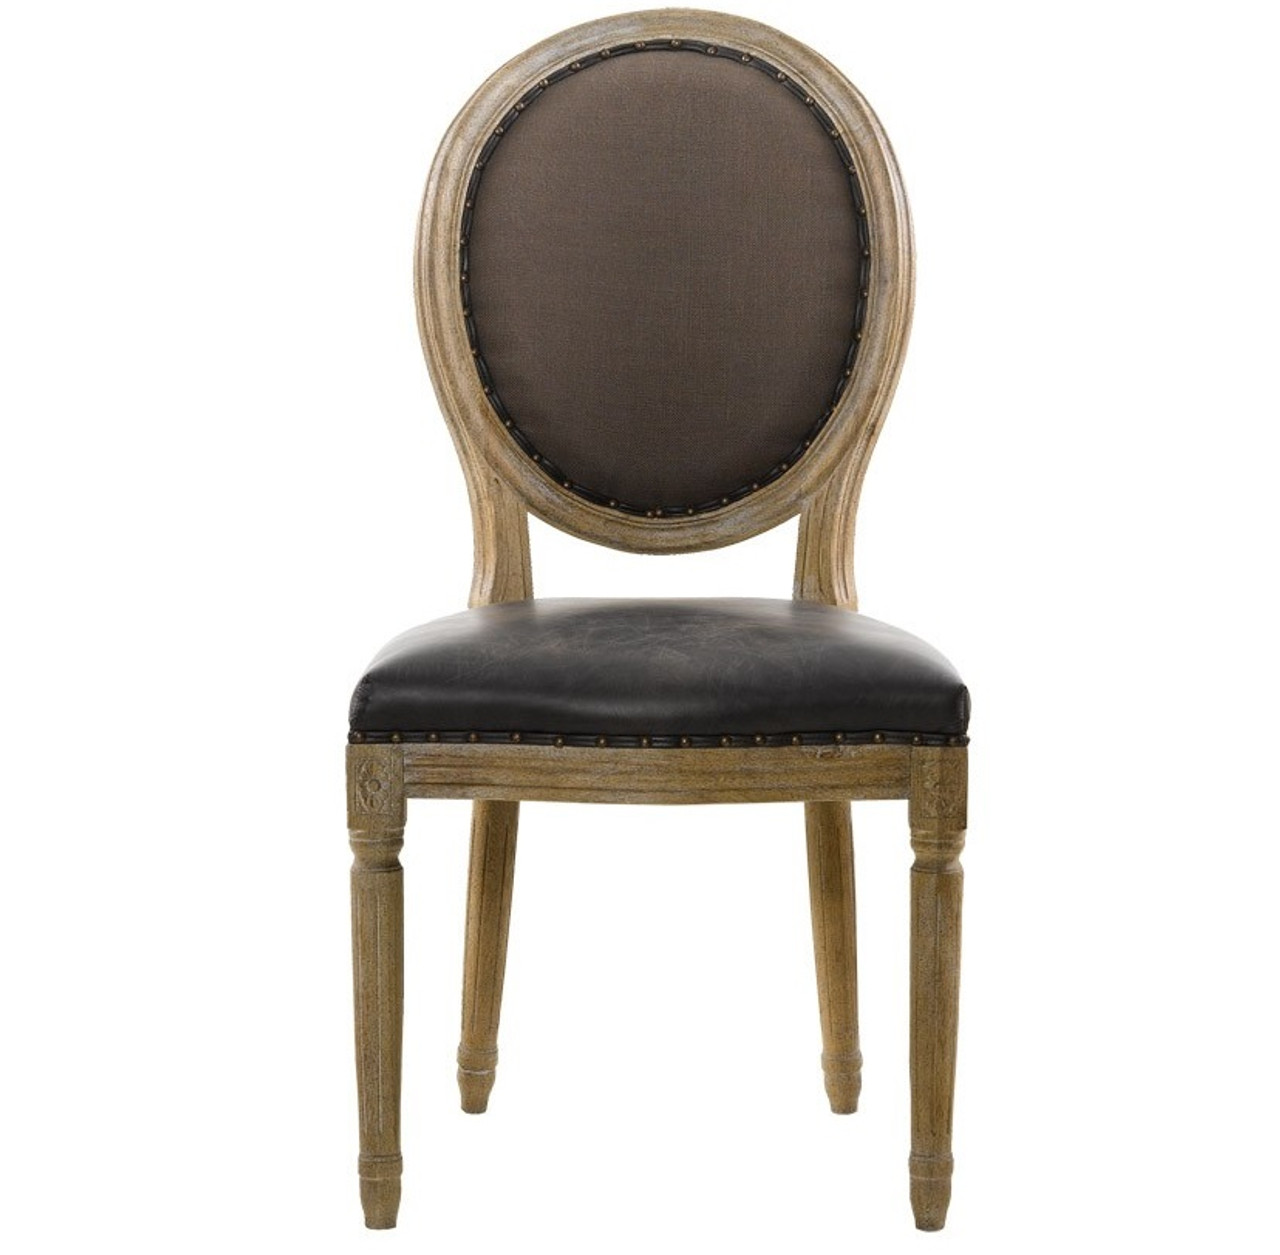 FRENCH VINTAGE LOUIS GLOVE ROUND SIDE CHAIR  sc 1 st  Zin Home & Louis Vintage Leather Round Dining Side Chair | Zin Home